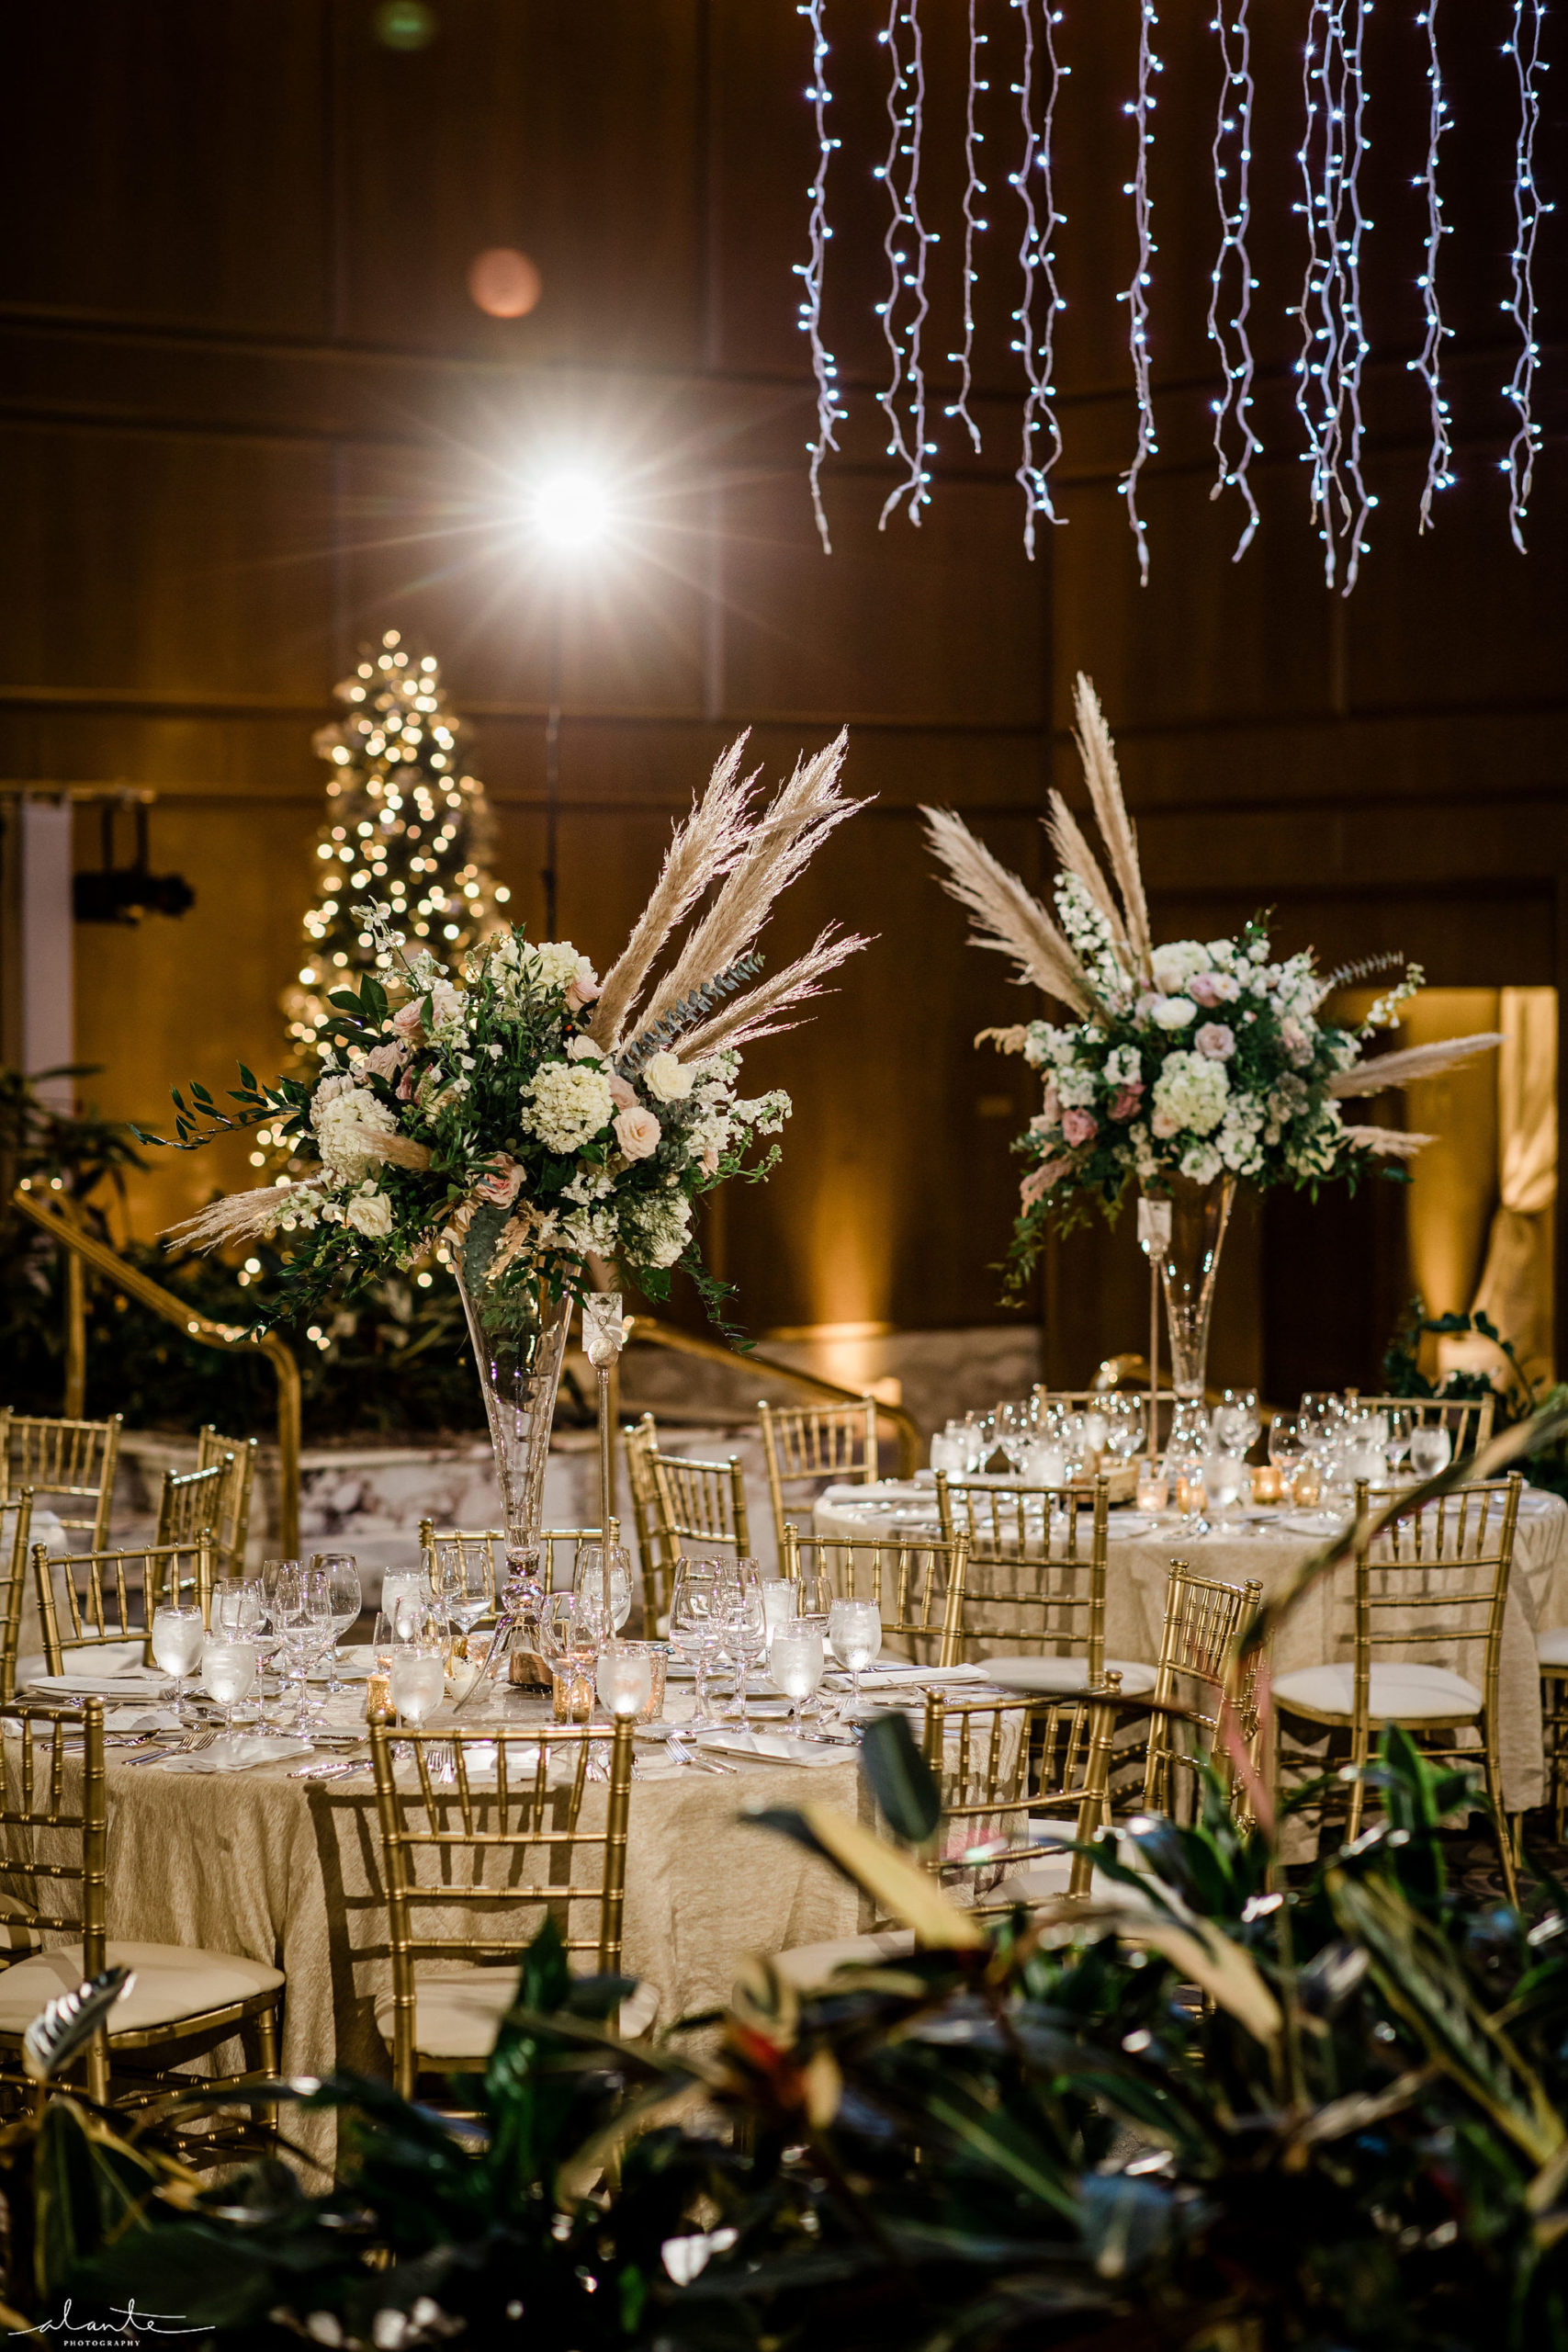 Pampas grass wedding tall white floral centerpieces with gold Chiavari Chairs at a winter reception.